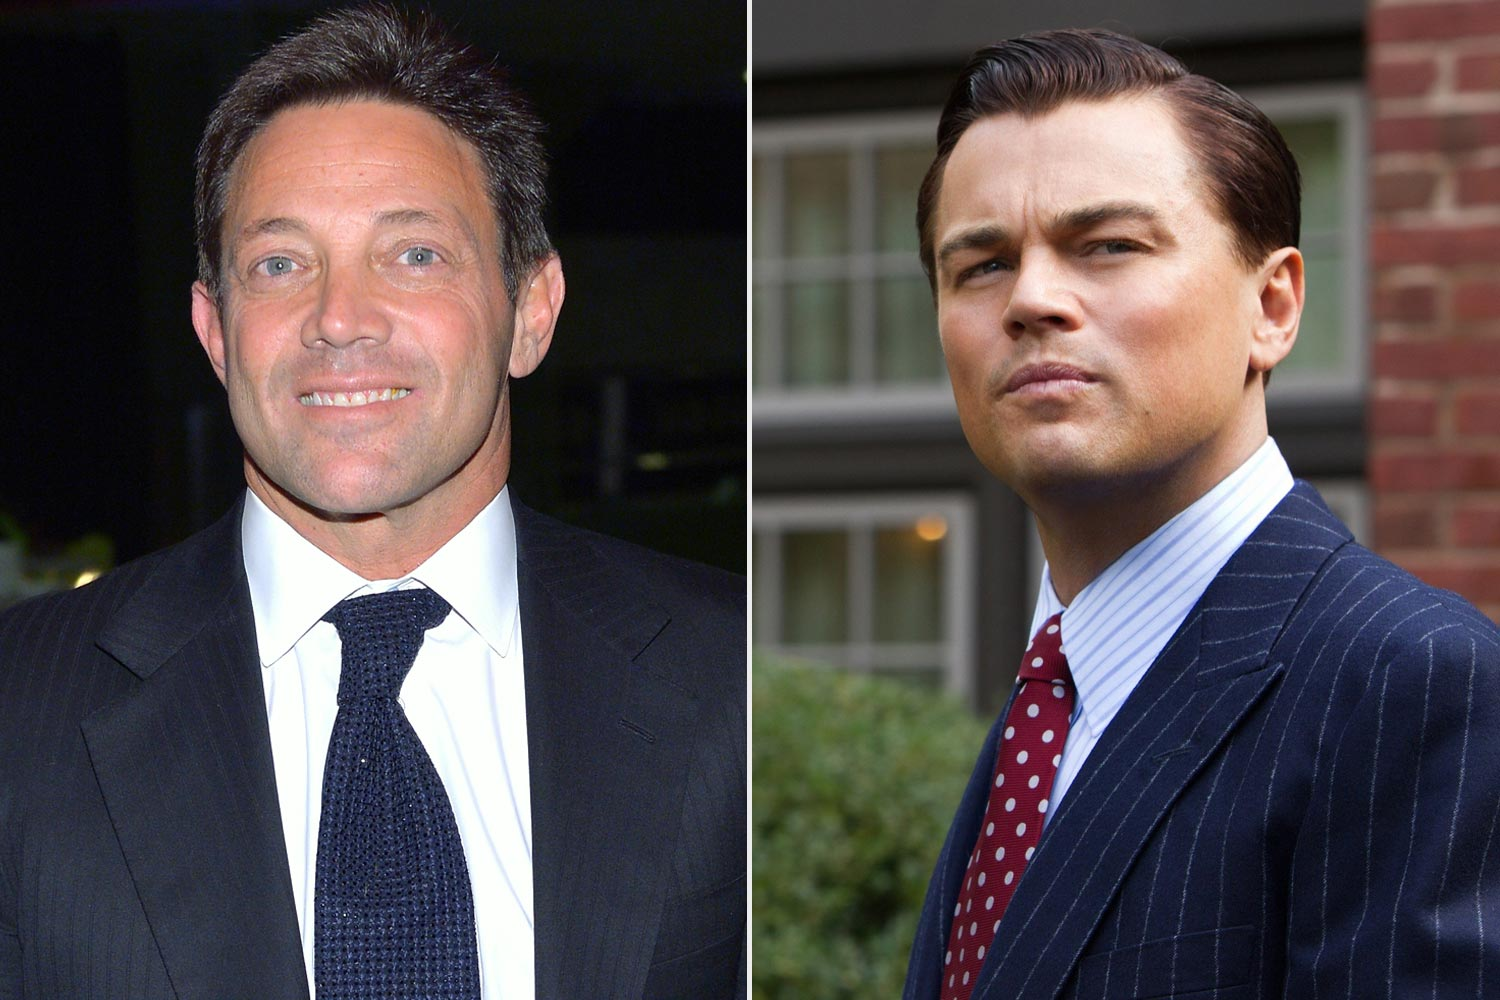 Jordan Belfort; The Wolf of Wall Street